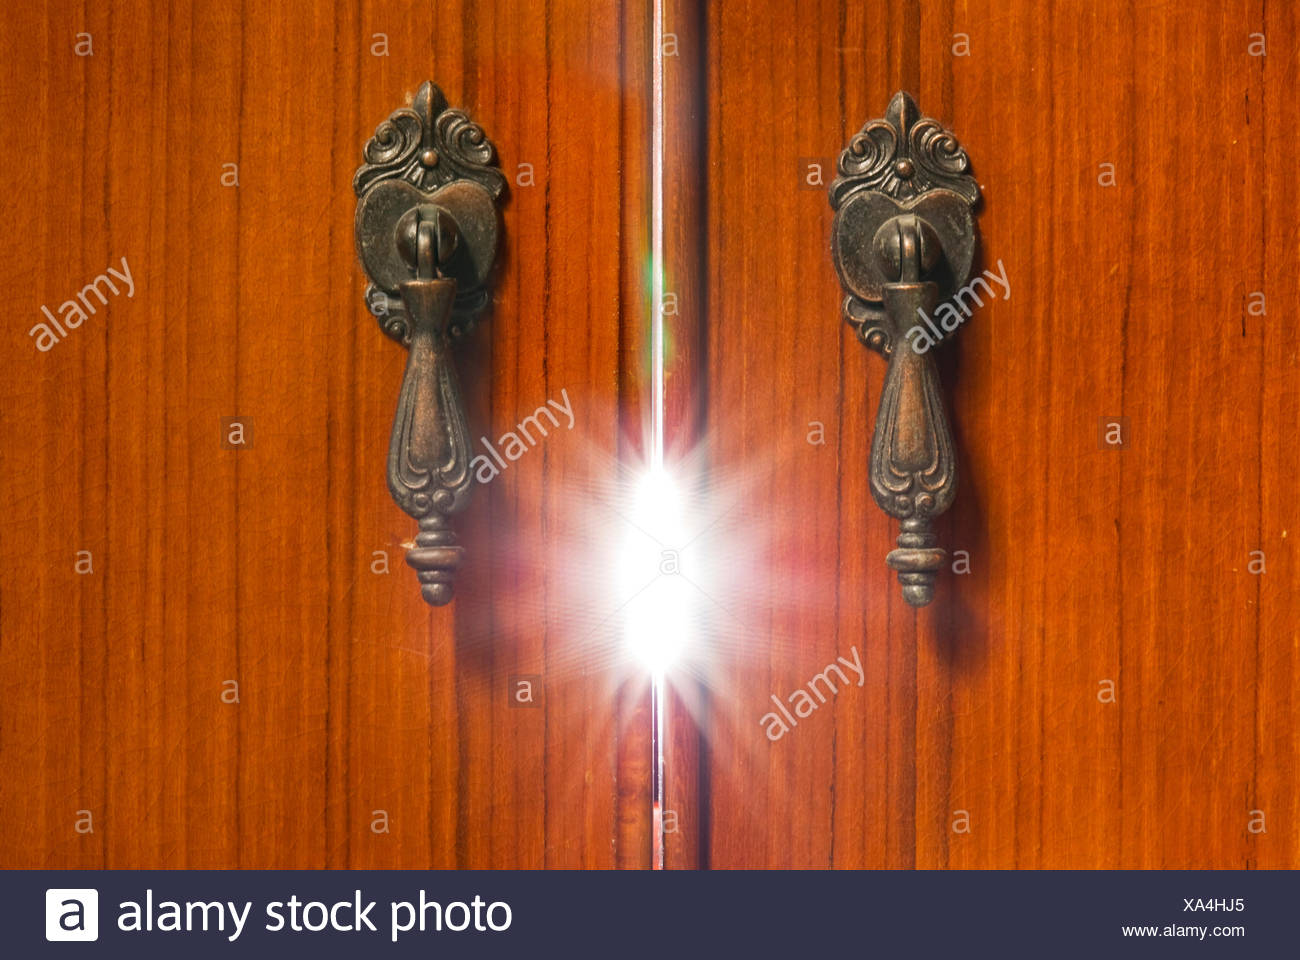 Mystery light from the cabinet - Stock Image